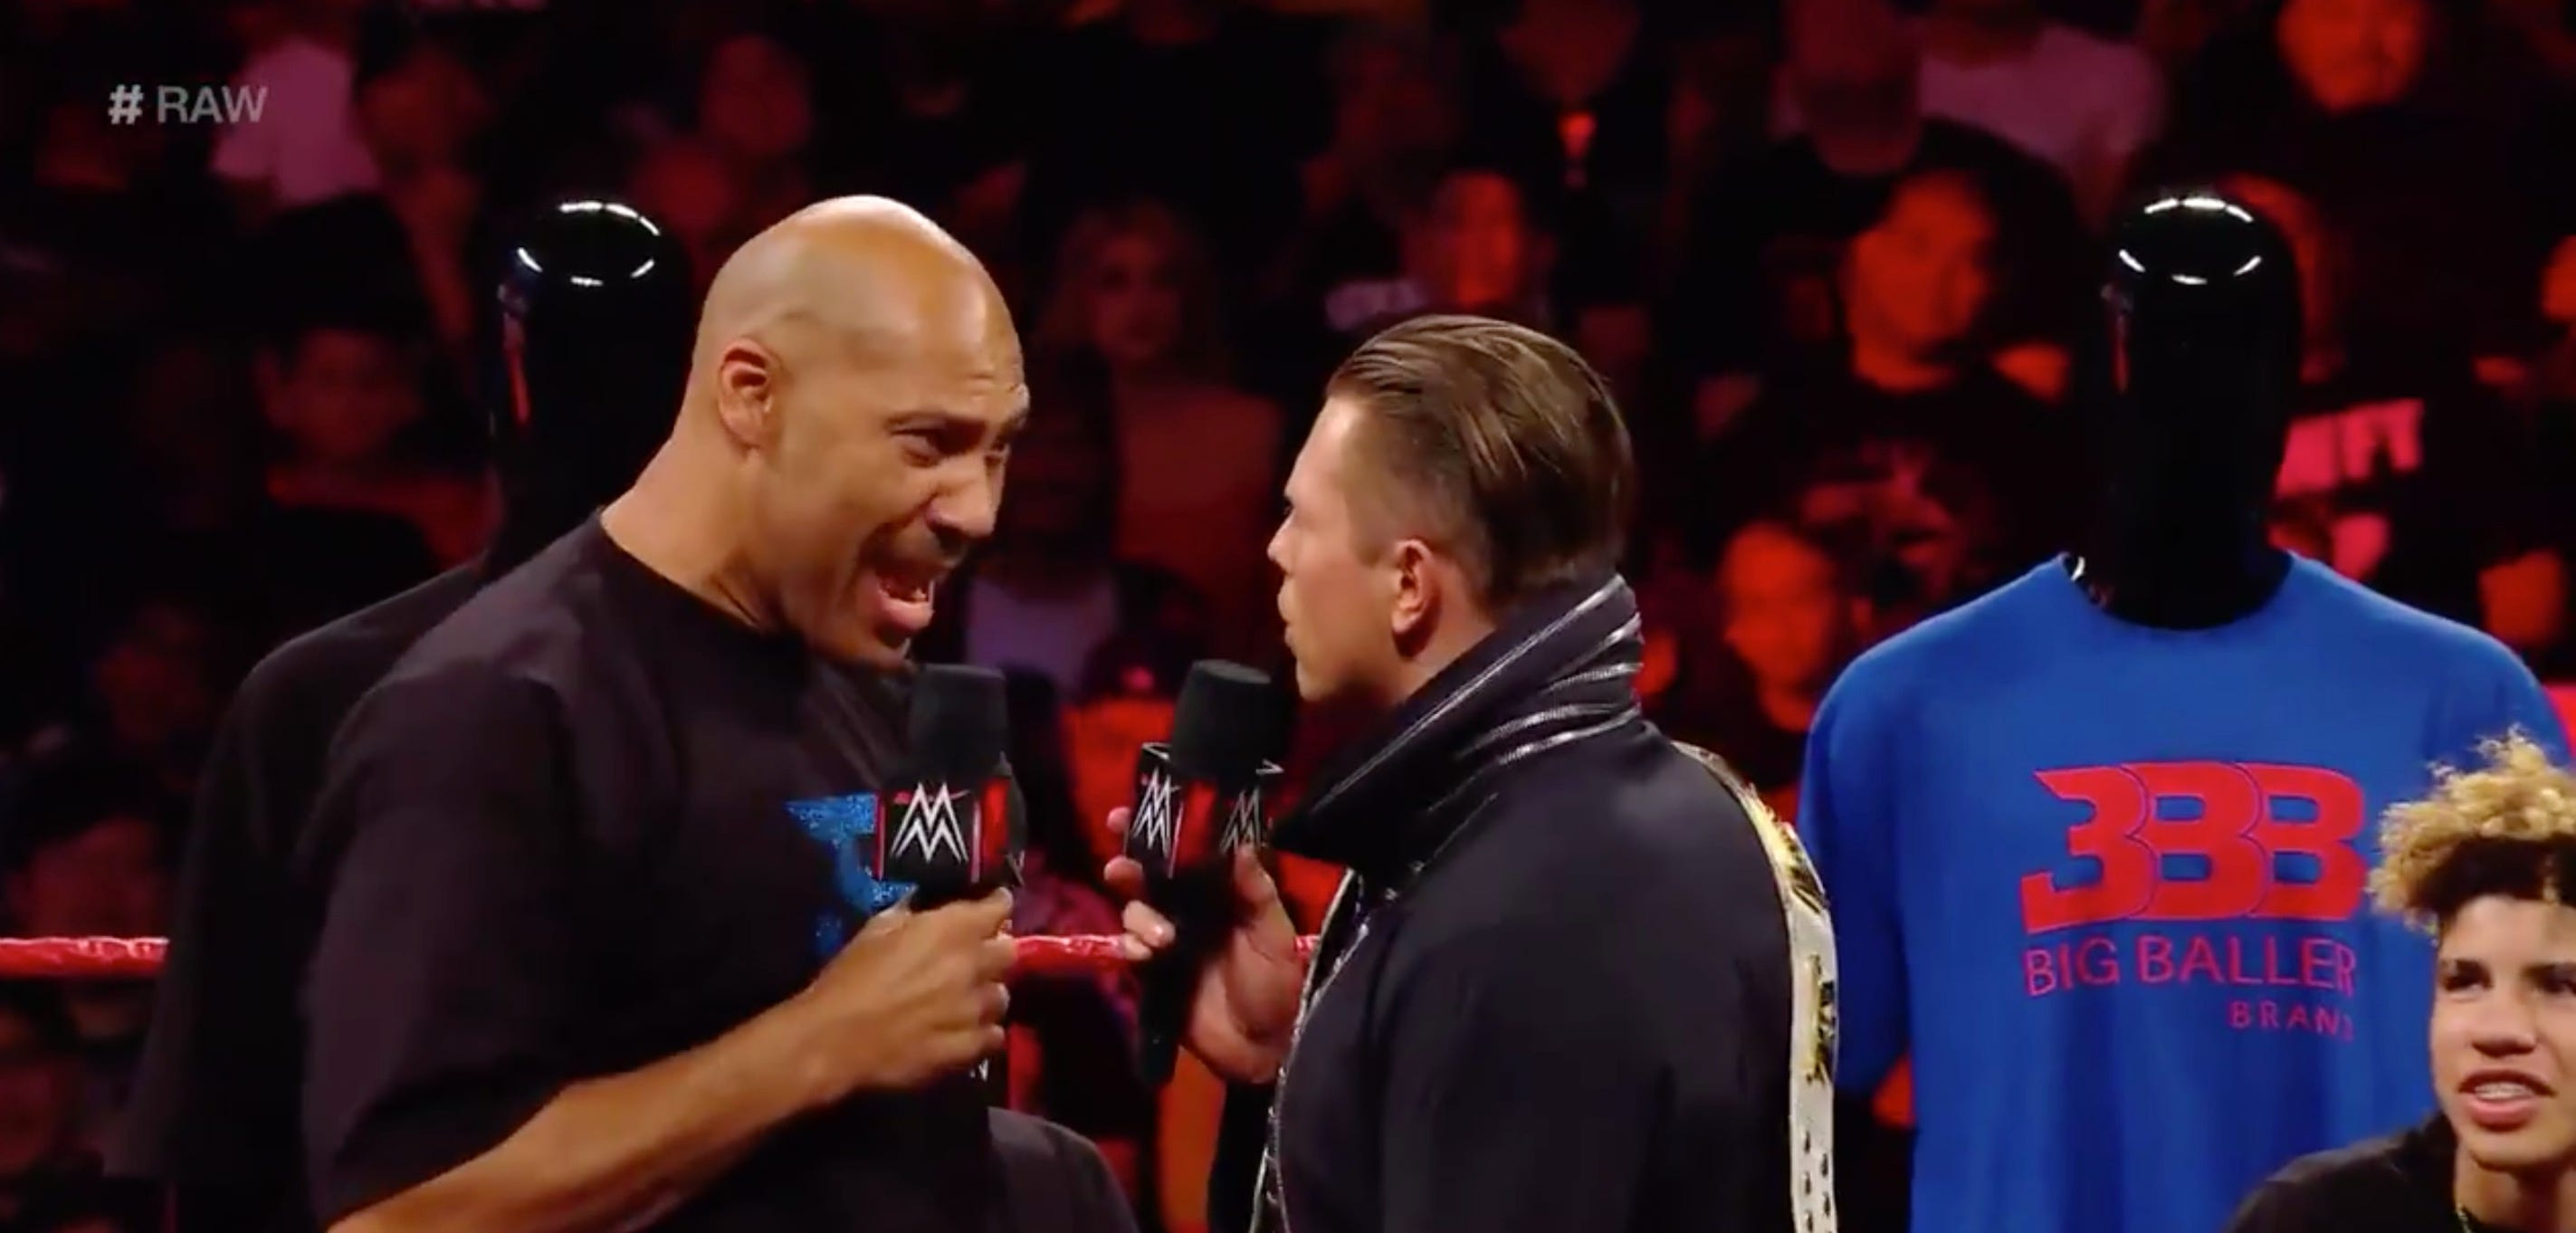 LaVar's appearance on 'RAW' was all about BBB